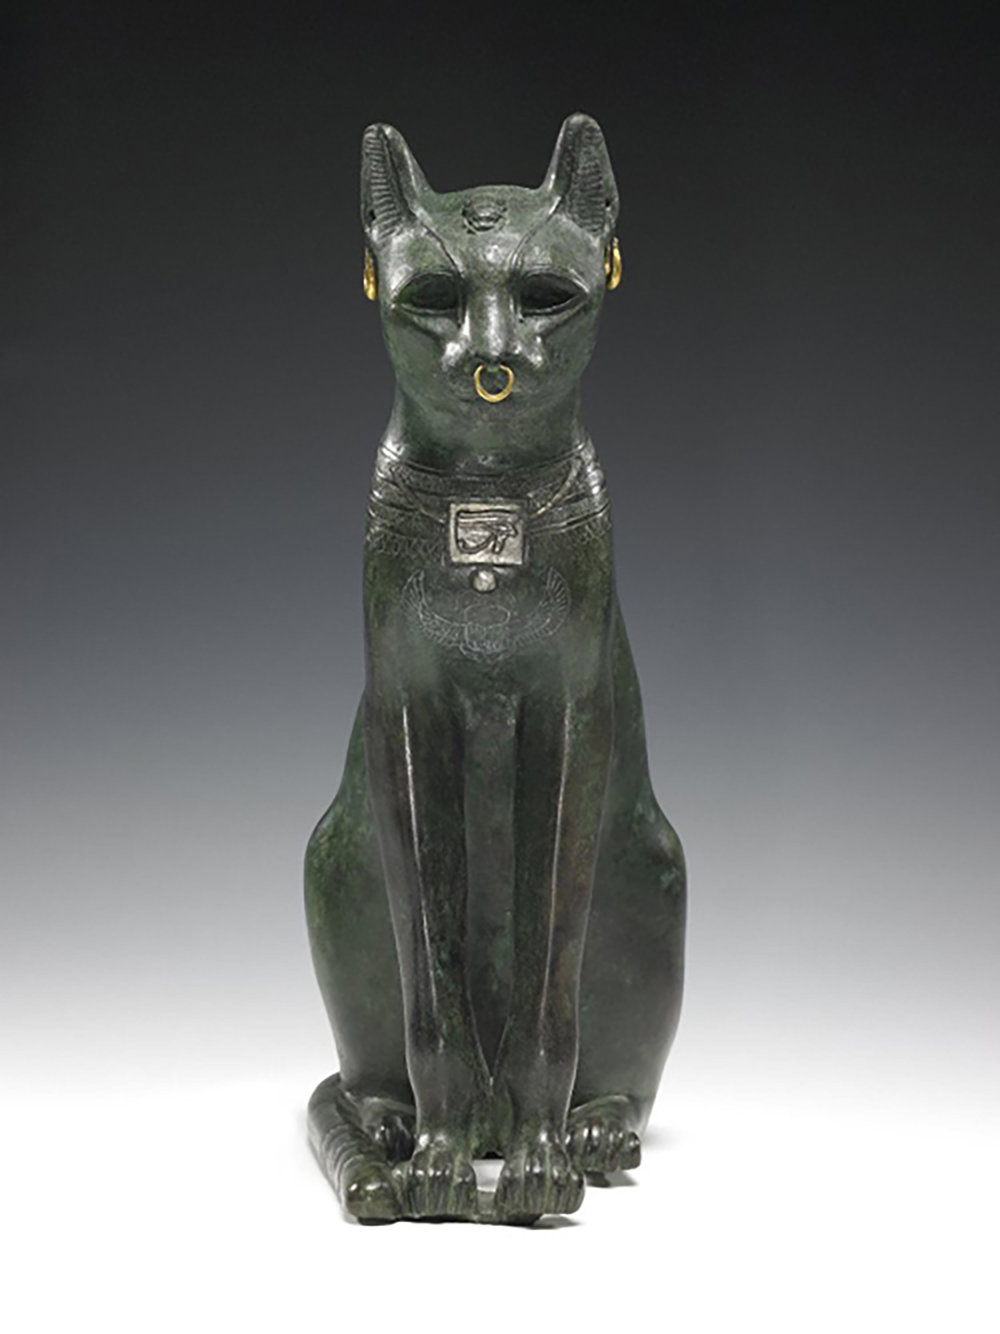 Figure 14: The bronze hollow-cast Gayer-Anderson cat figure with details in silver and gold, Late Period (664-332 BCE). British Museum EA64391. Image courstesy of the British Museum.